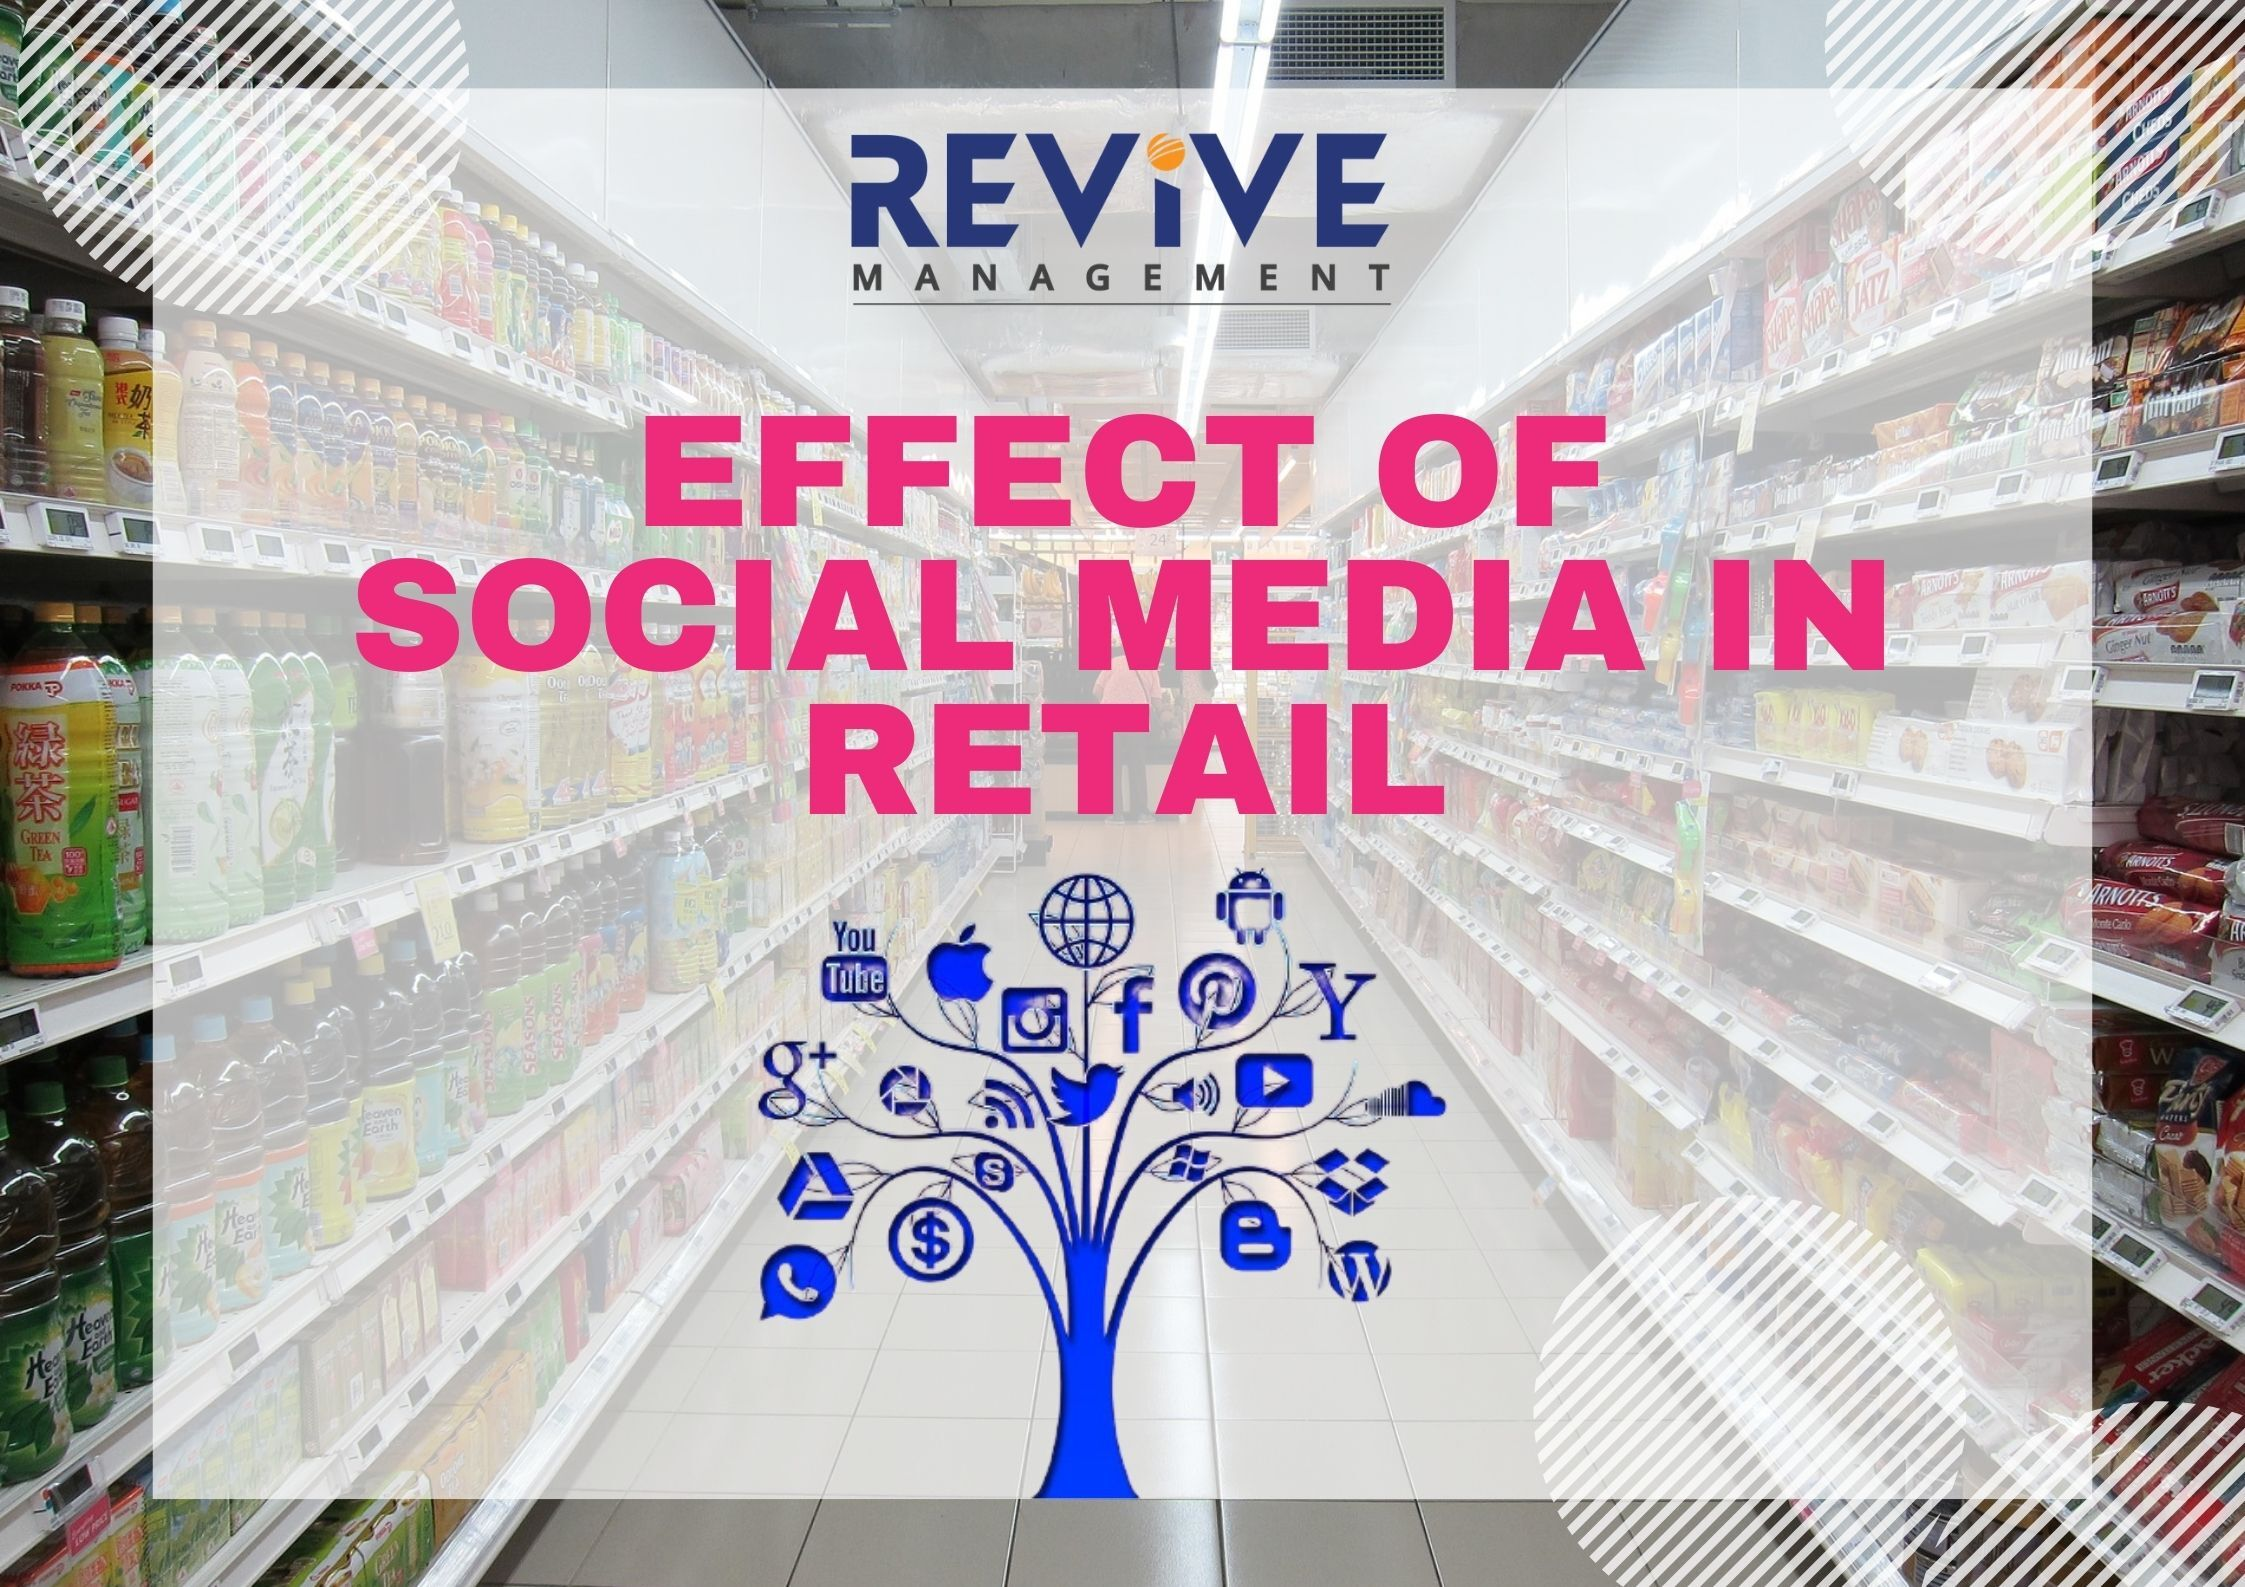 Effect of Social Media in Retail